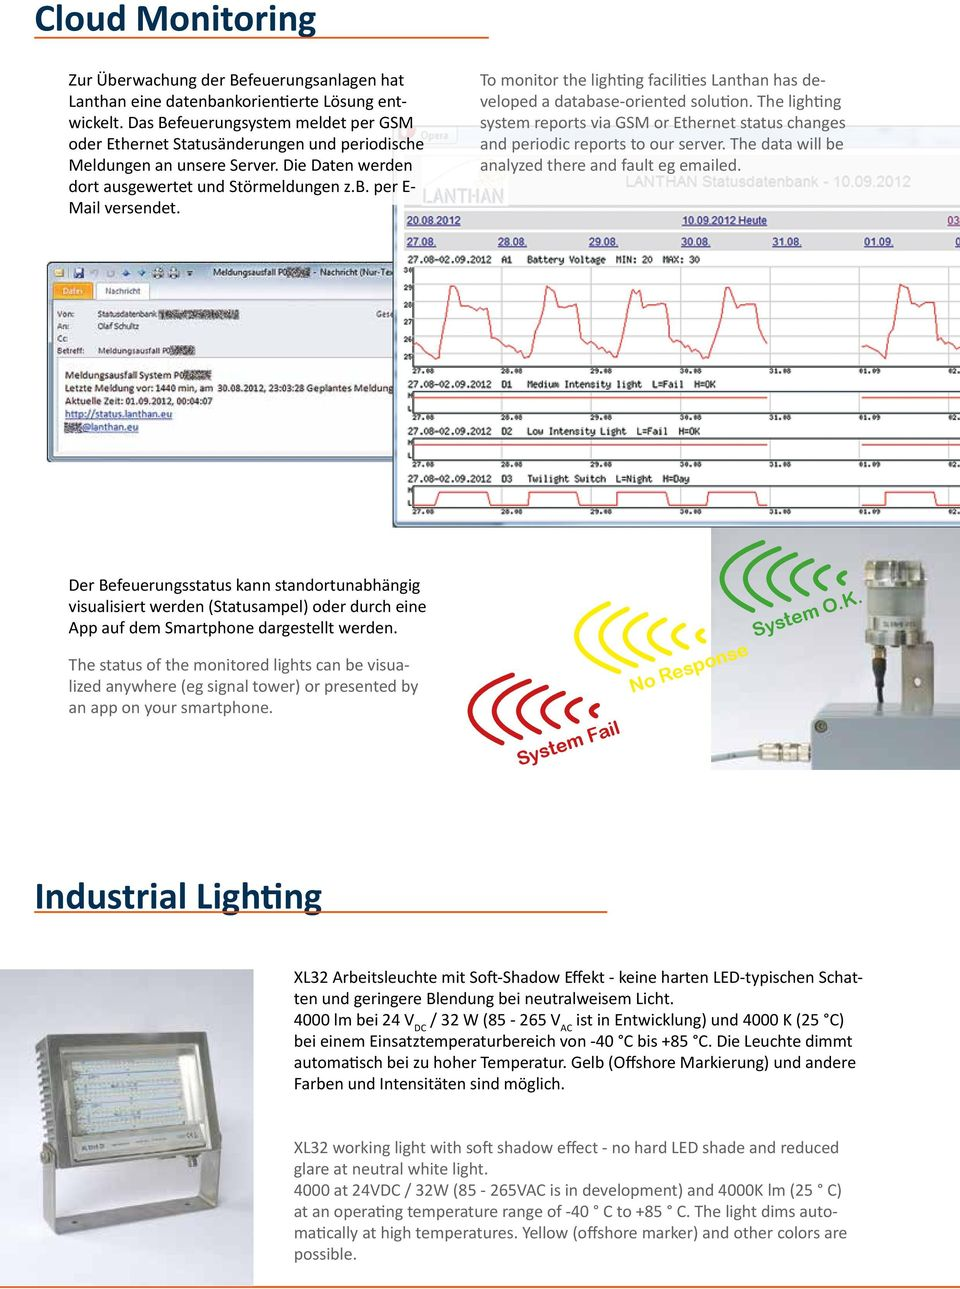 To monitor the lighting facilities Lanthan has developed a database-oriented solution. The lighting system reports via GSM or Ethernet status changes and periodic reports to our server.